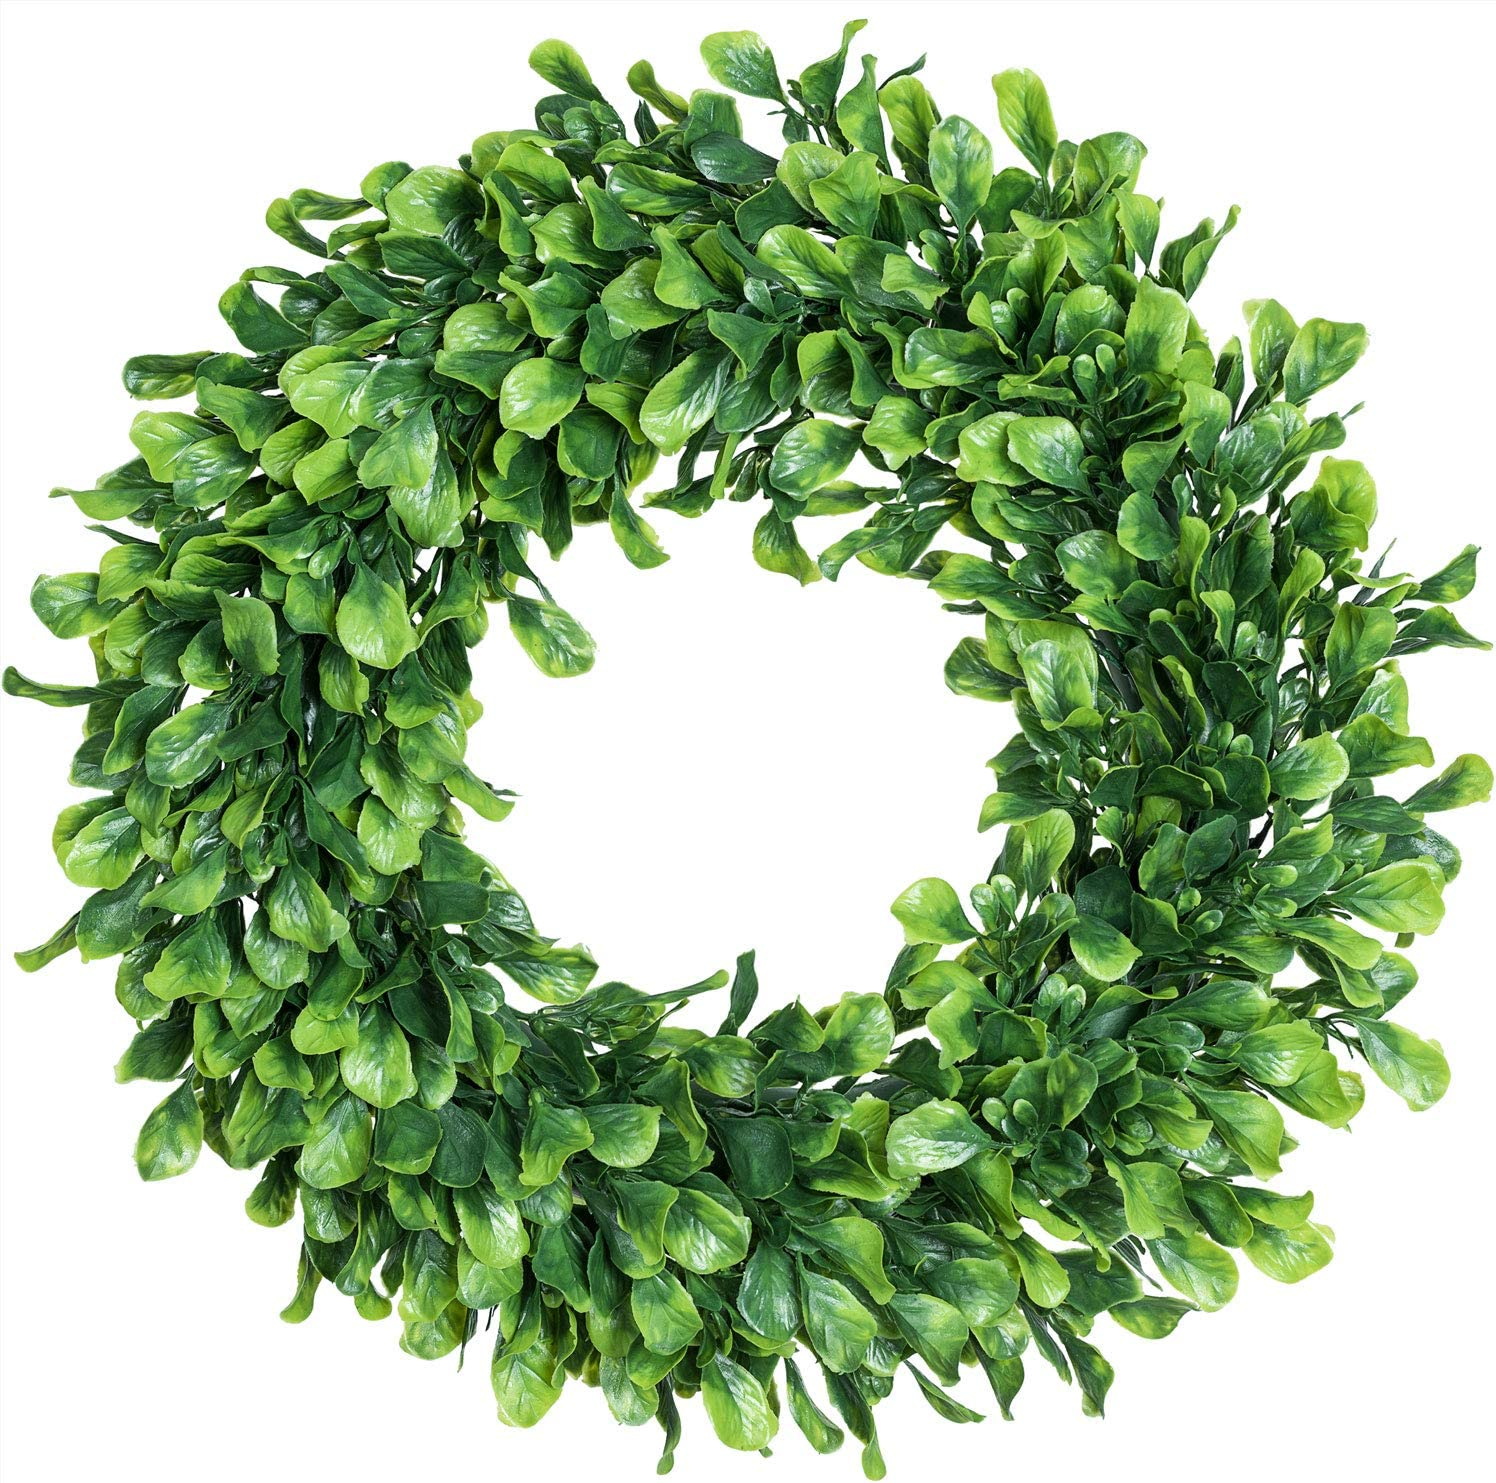 Lvydec Artificial Green Leaves Wreath 15 Boxwood Wreath Outdoor Green Wreath For Front Door Wall Window Party Décor Amazon Co Uk Kitchen Home